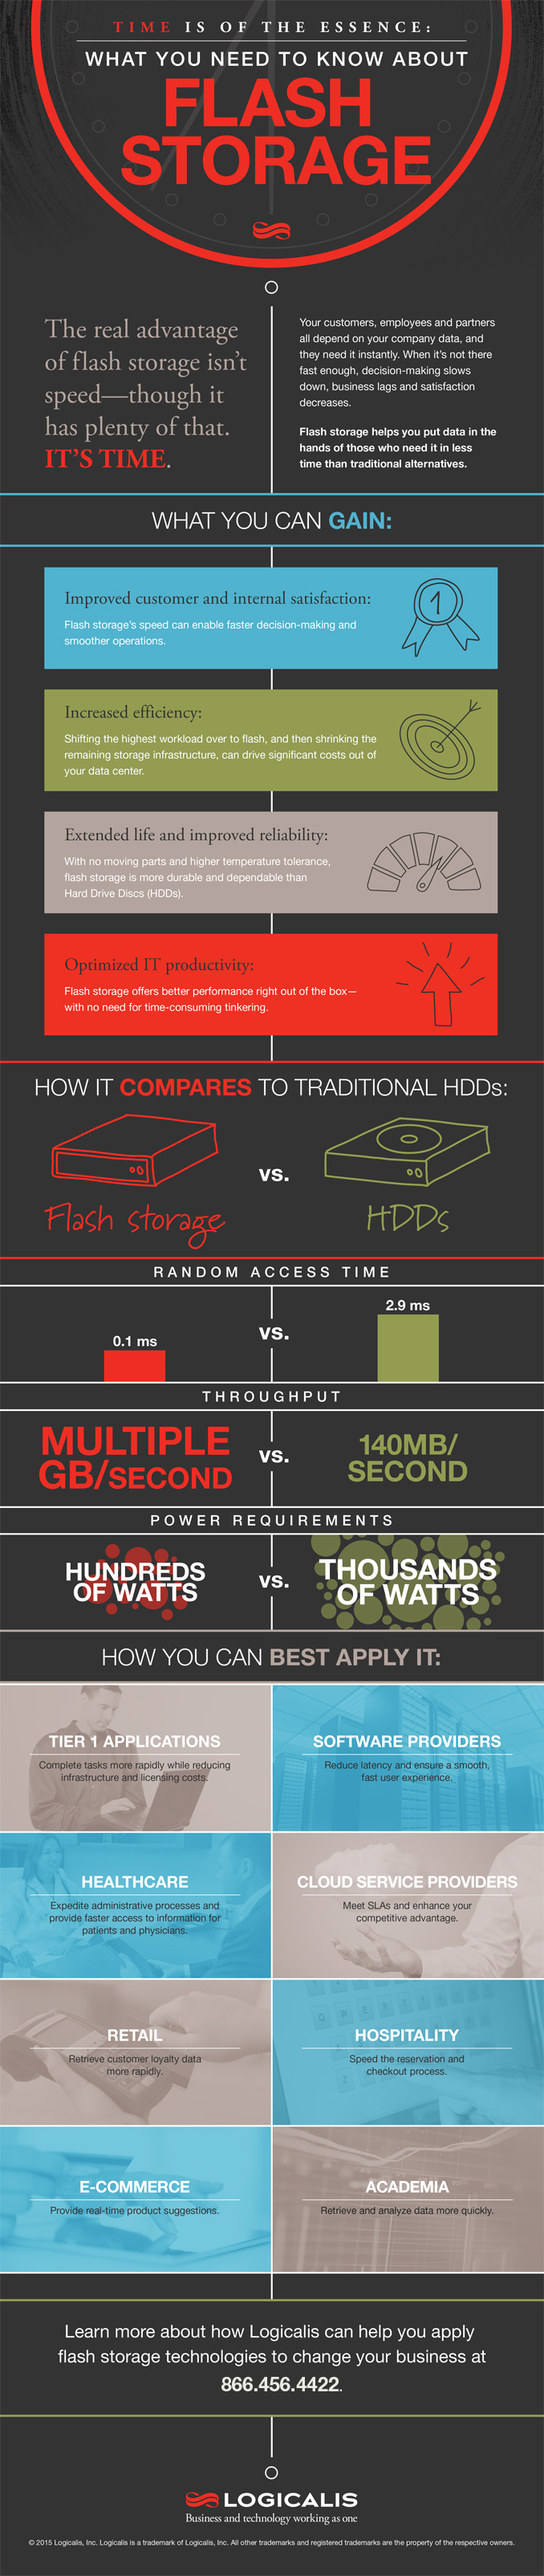 Infographic: What You Need to Know About Flash Storage